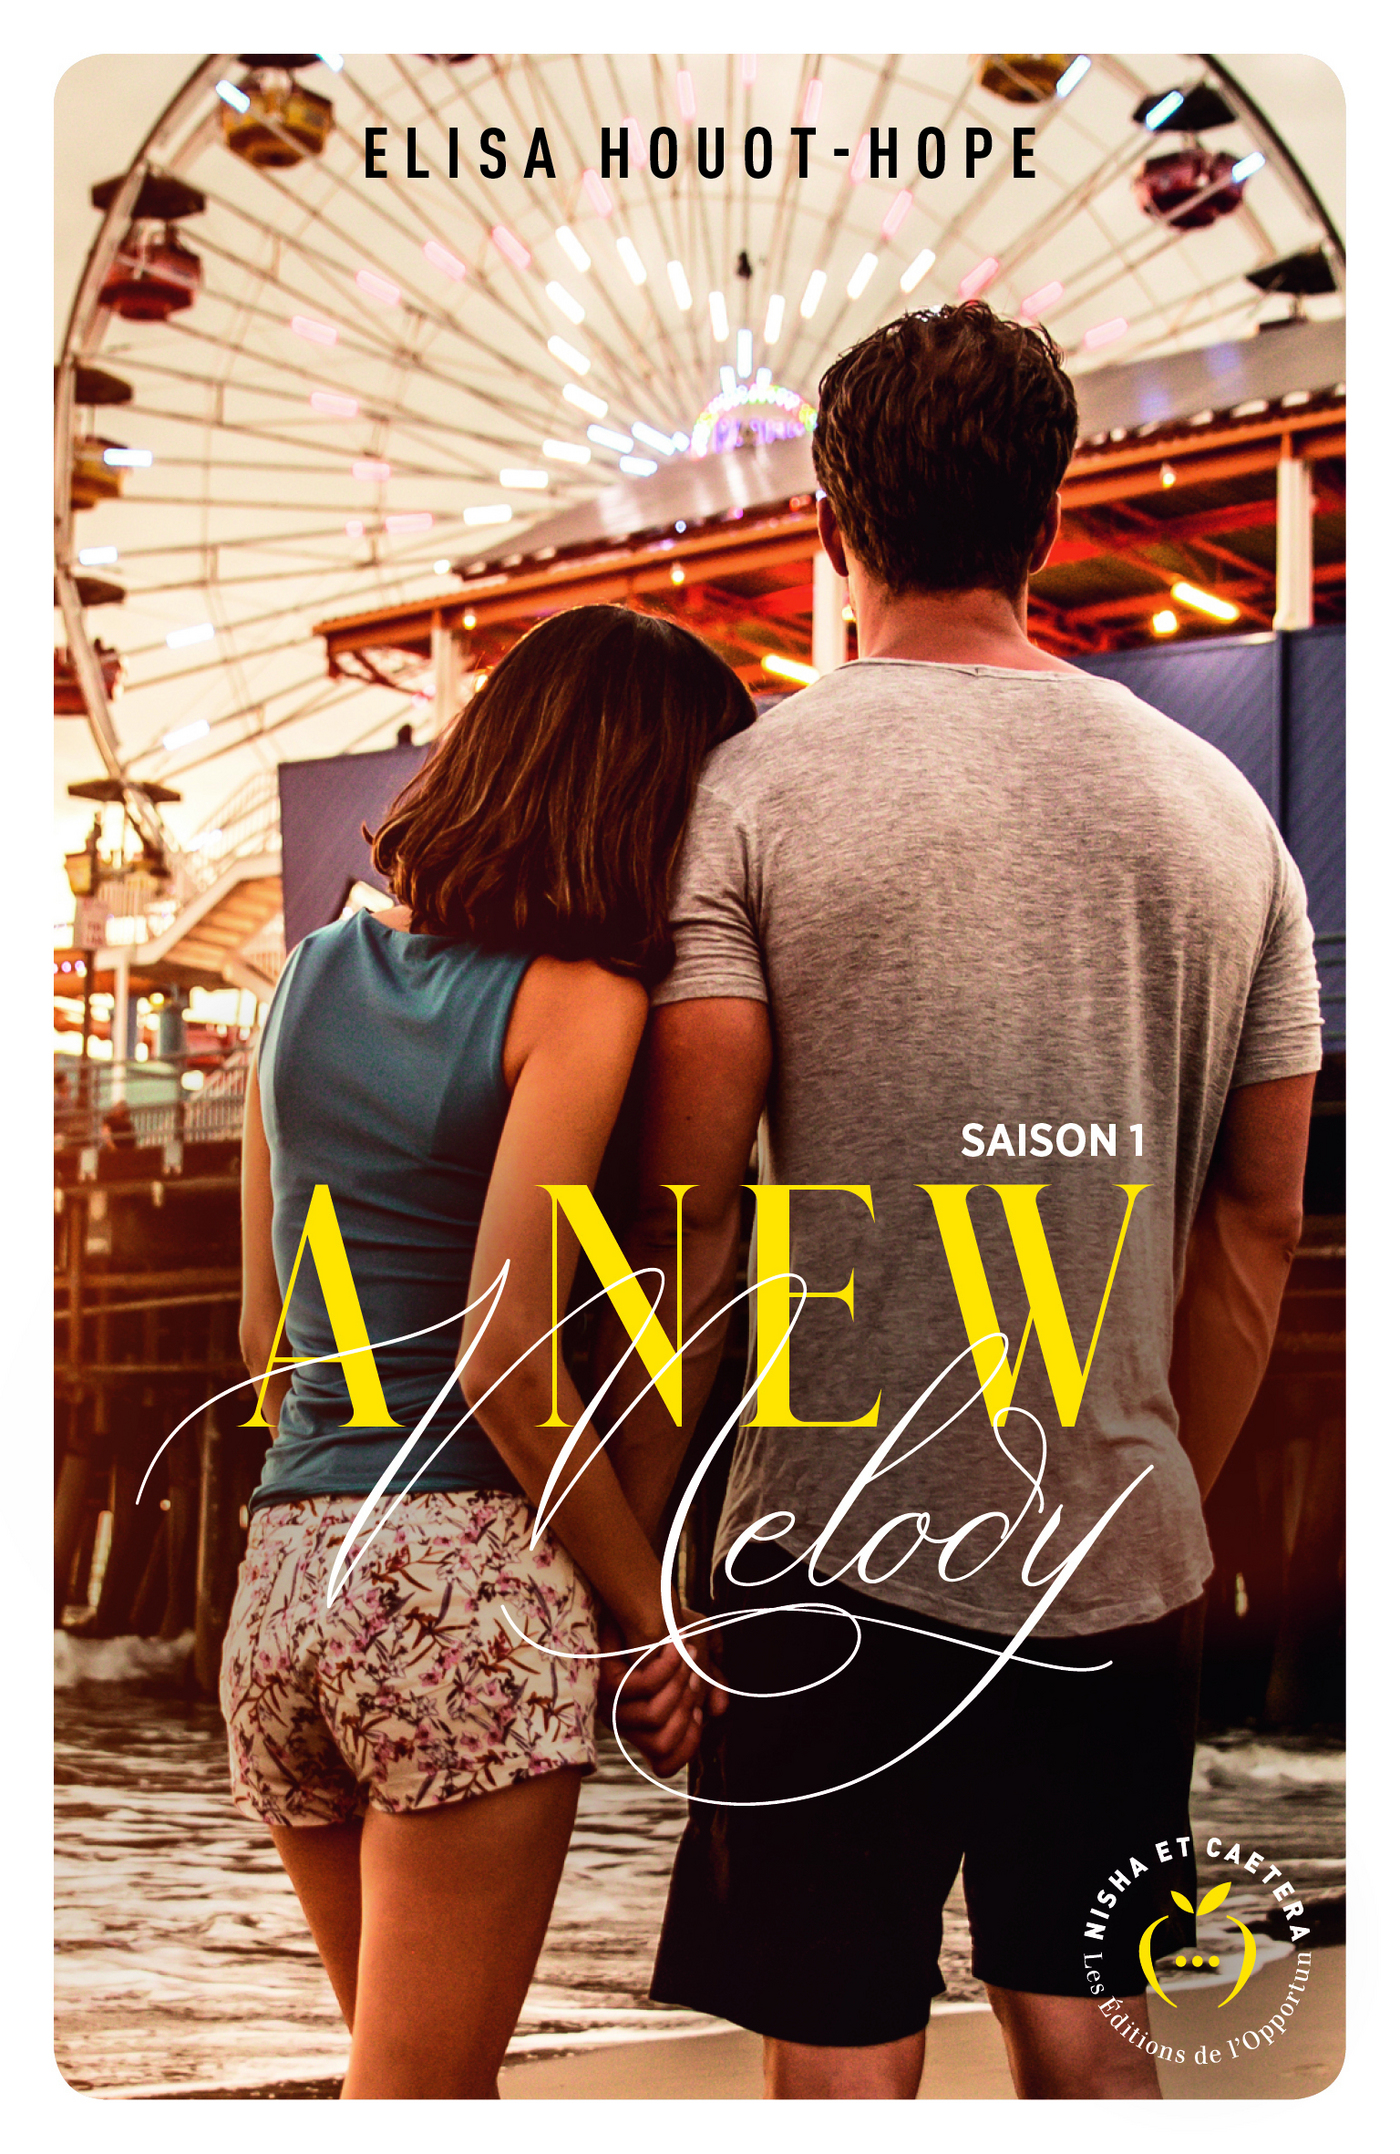 A new melody - saison 1